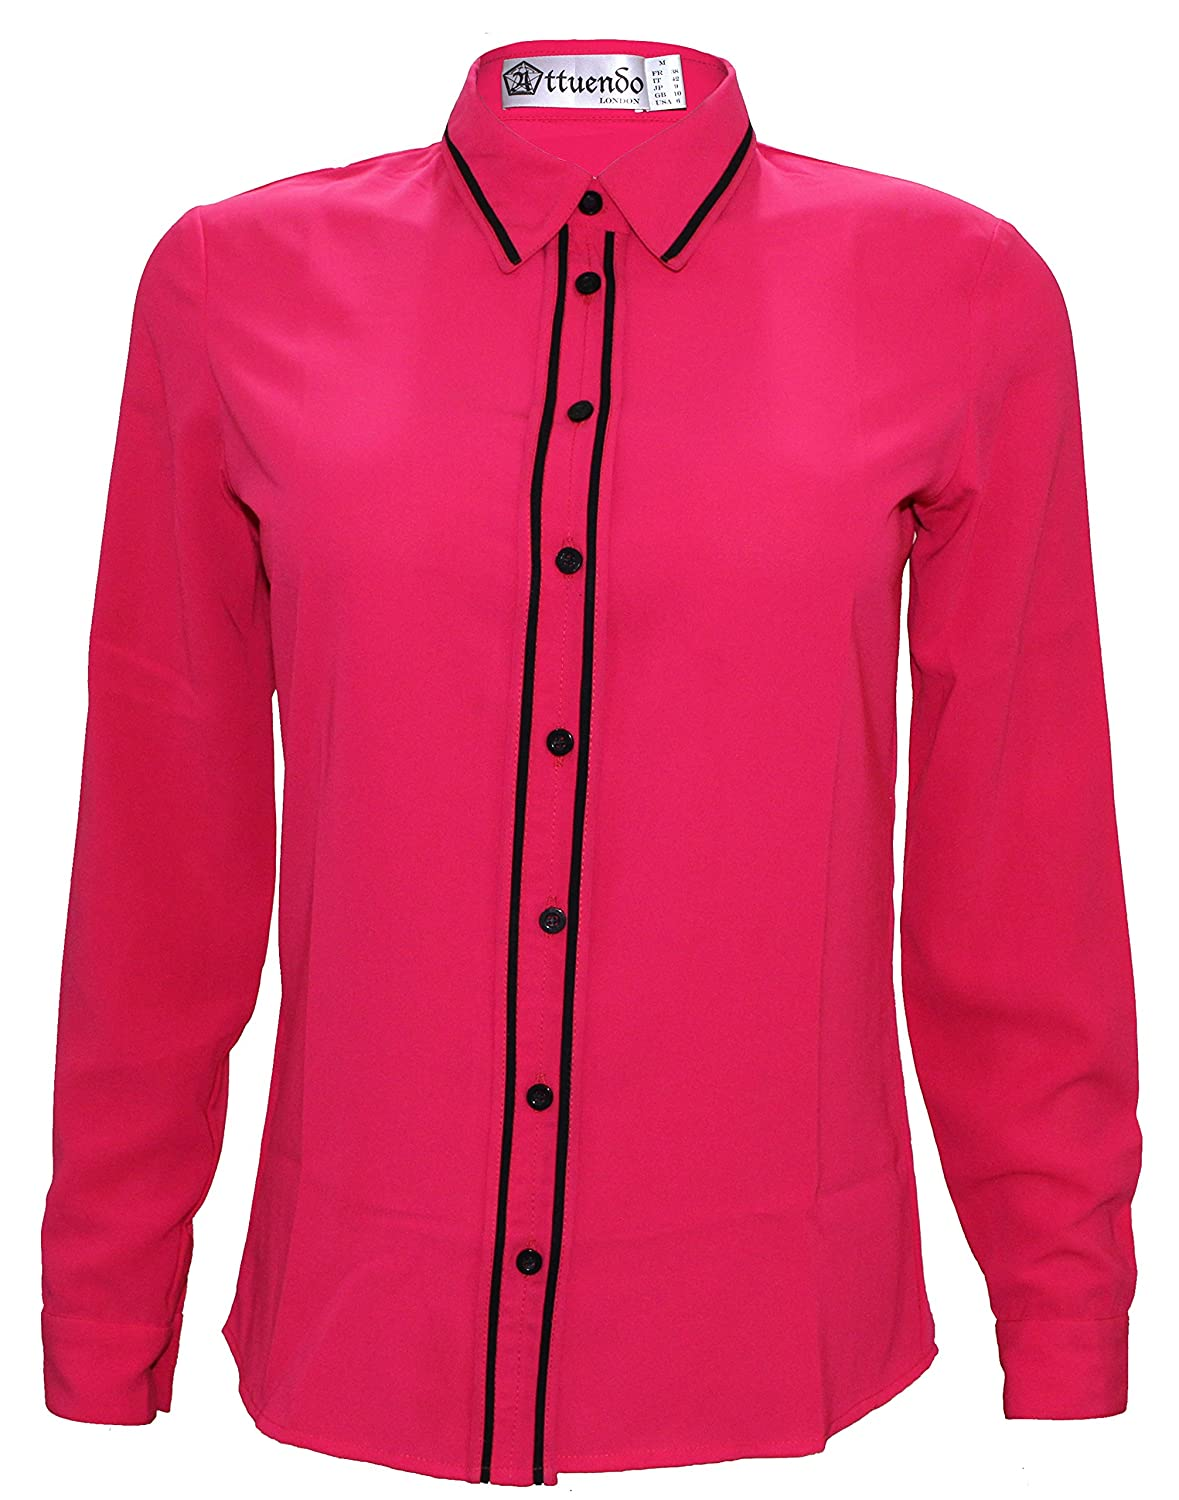 Attuendo Women s Pink Button-Down Shirt with Black Piping at Amazon Women s  Clothing store  122086294